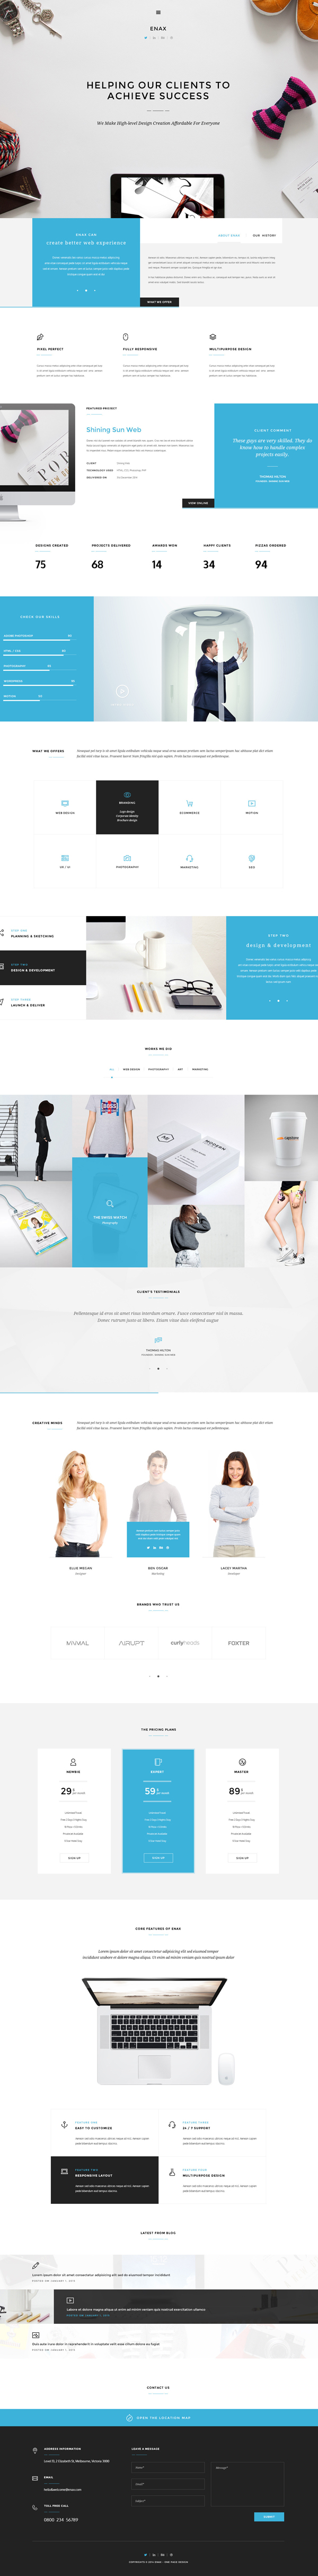 Enax - A Stylish and Modern Corporate Theme